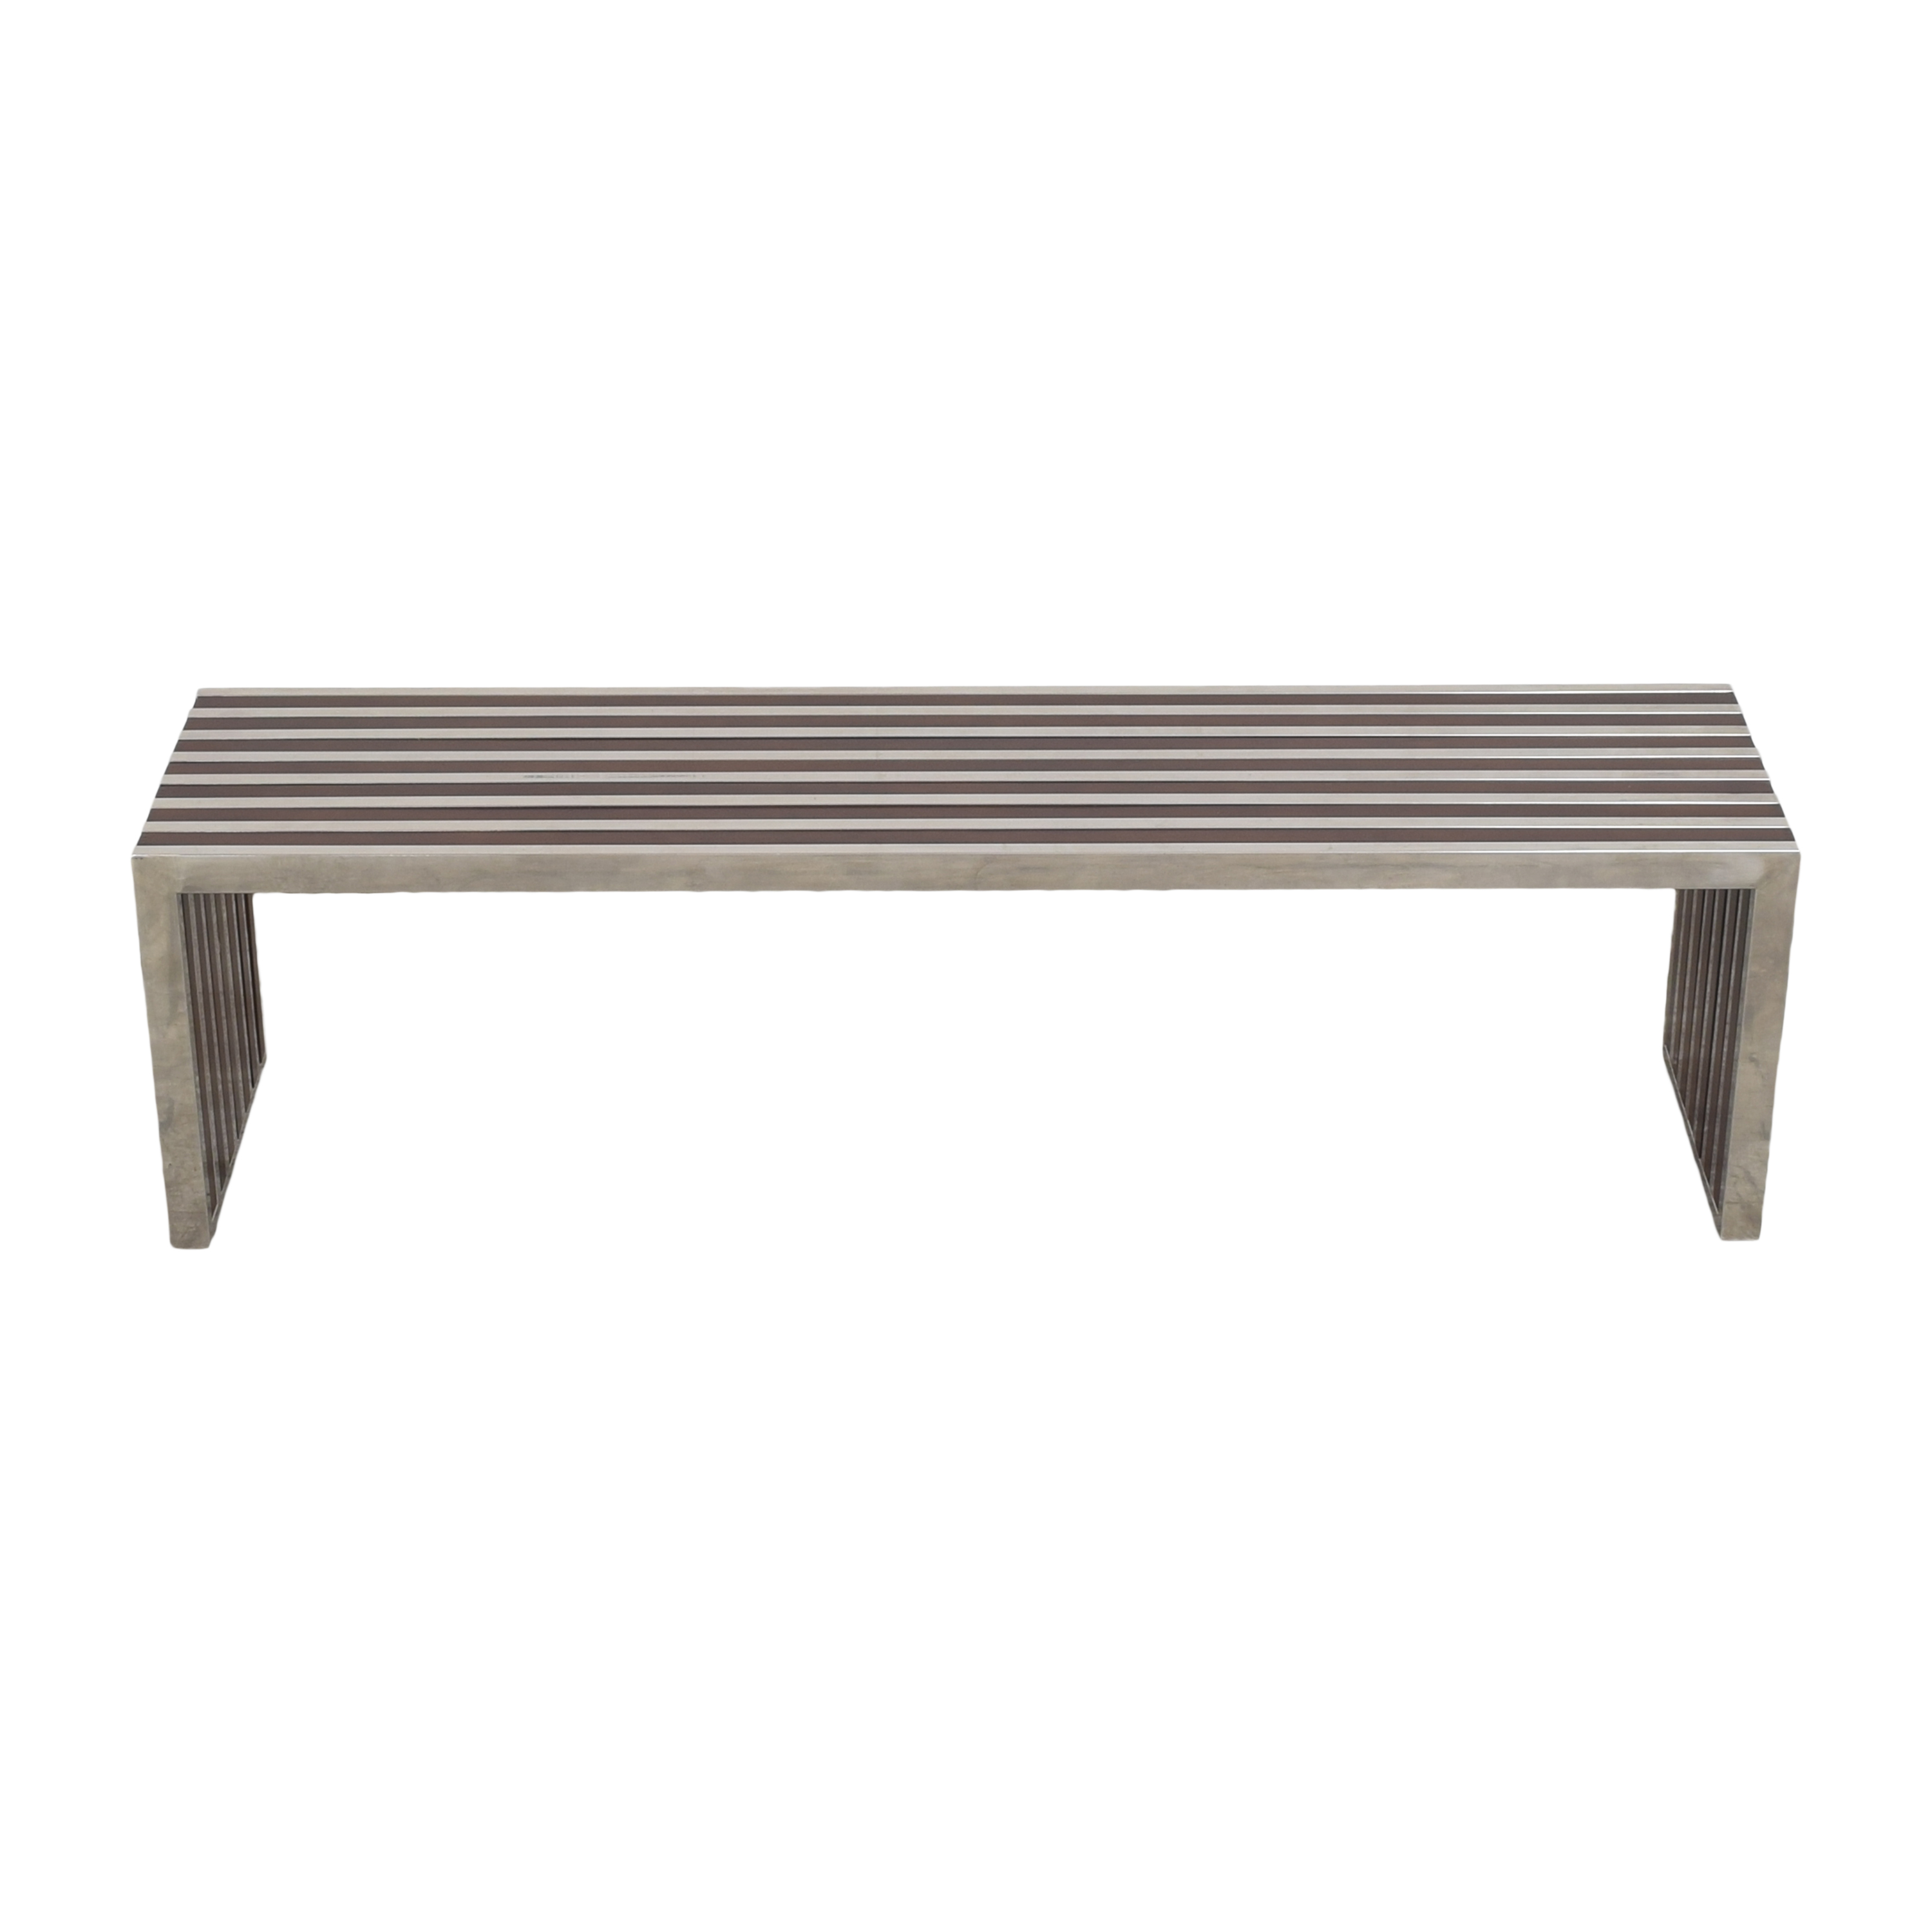 LexMod LexMod Gridiron Large Inlay Bench ct